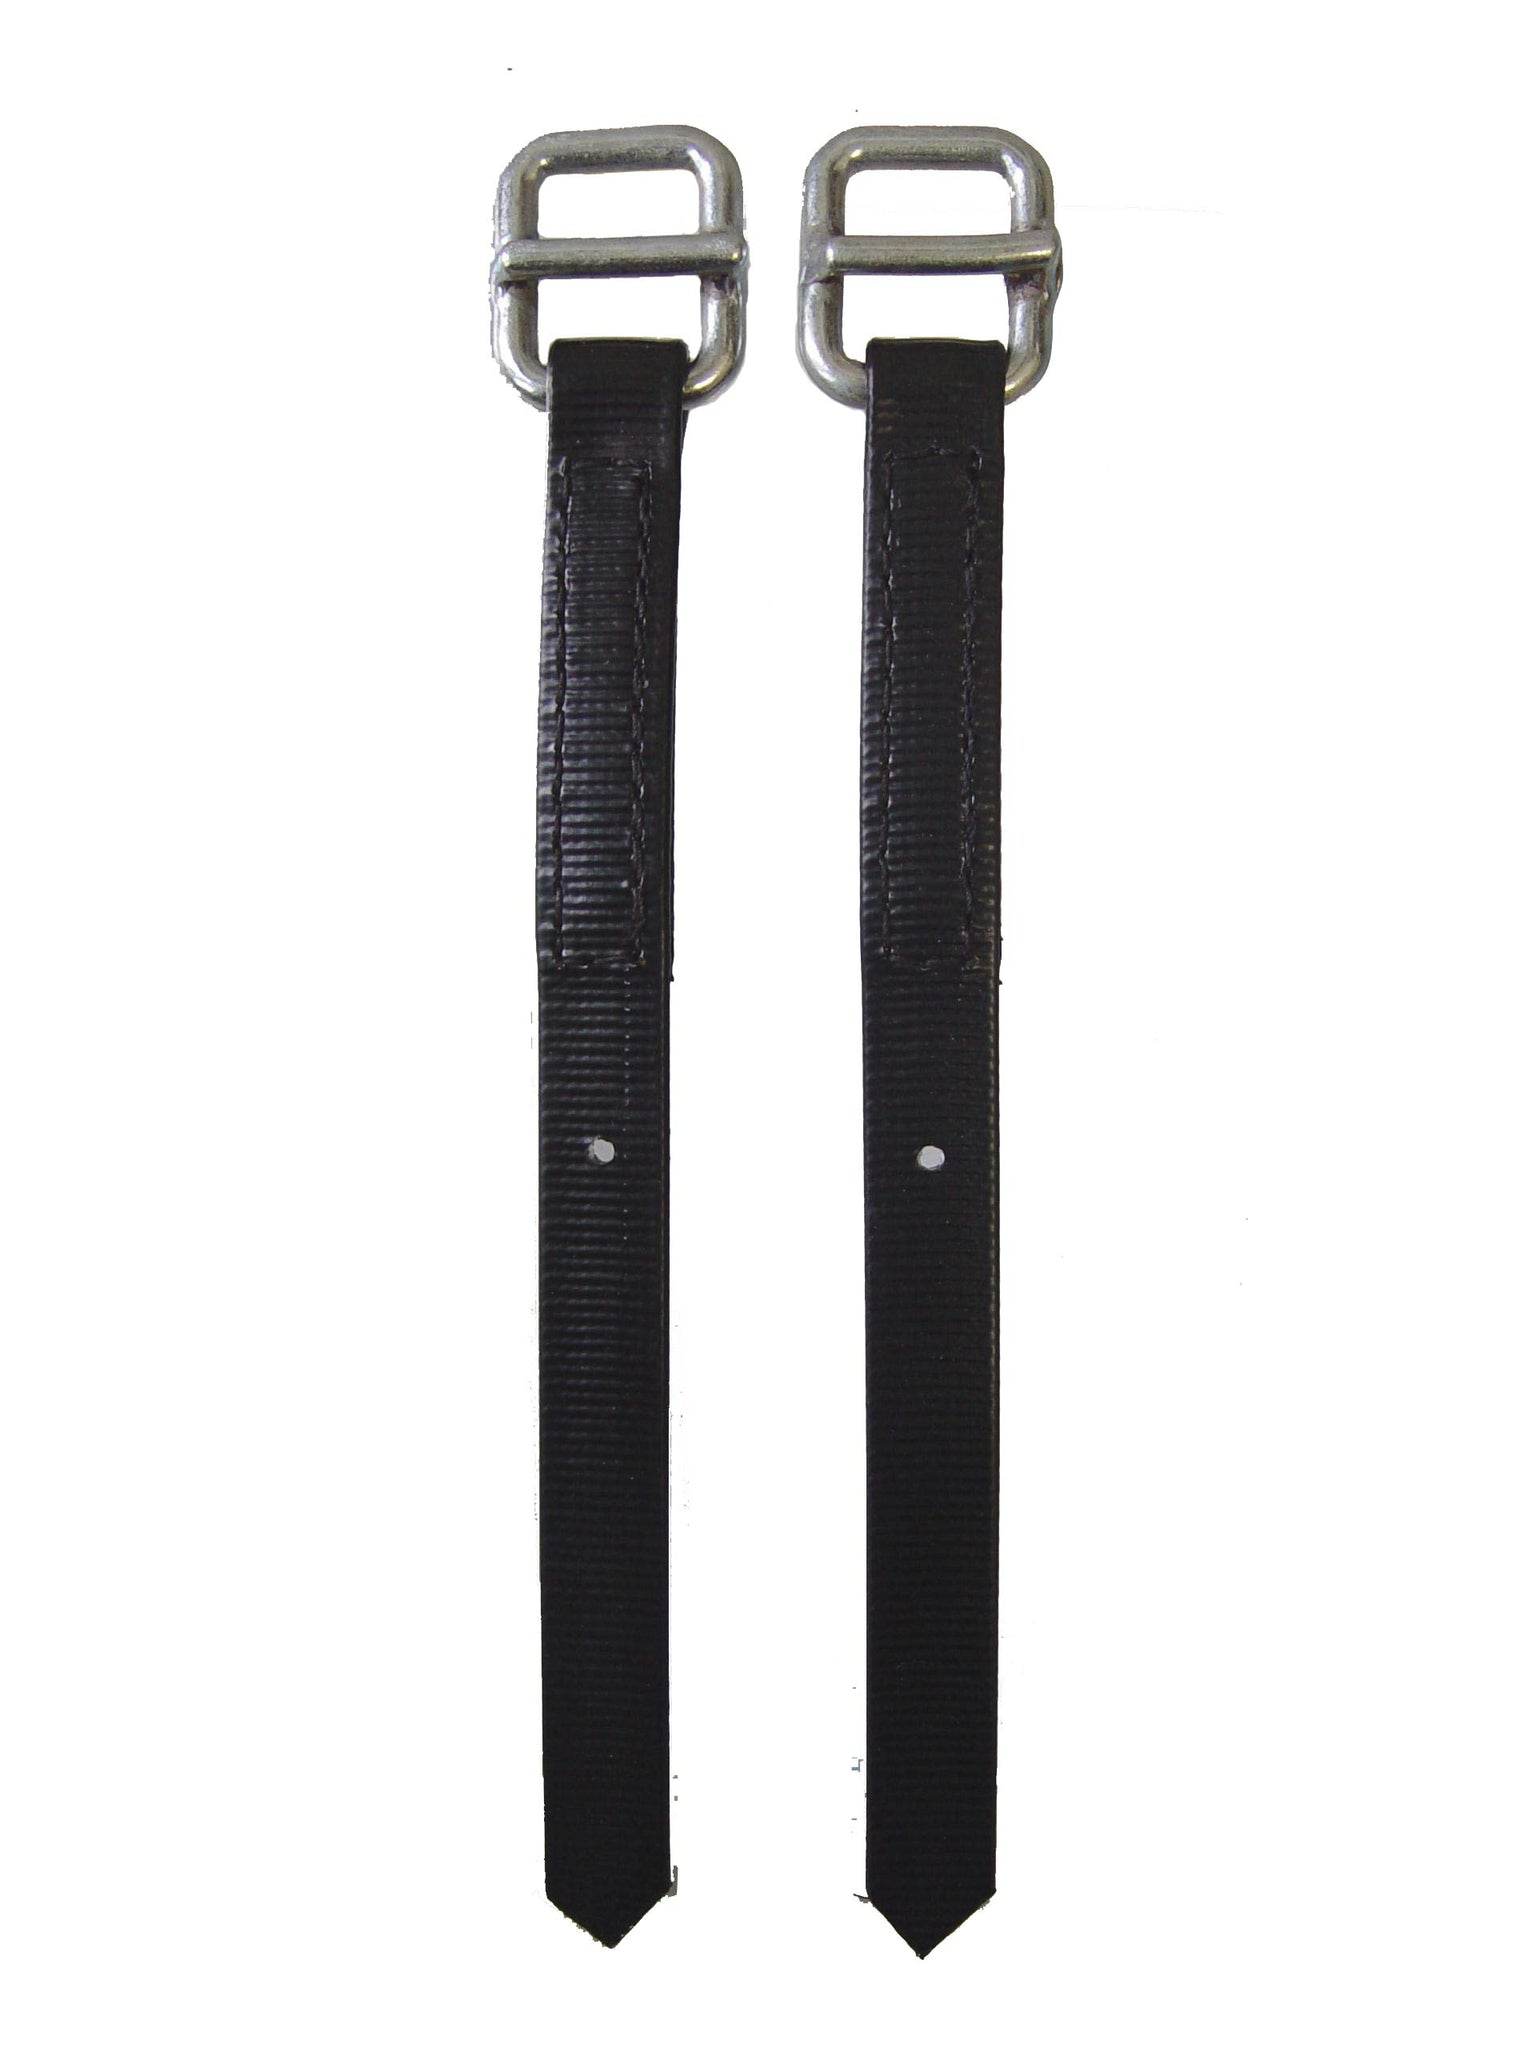 Hopple Shortner Conversion Strap